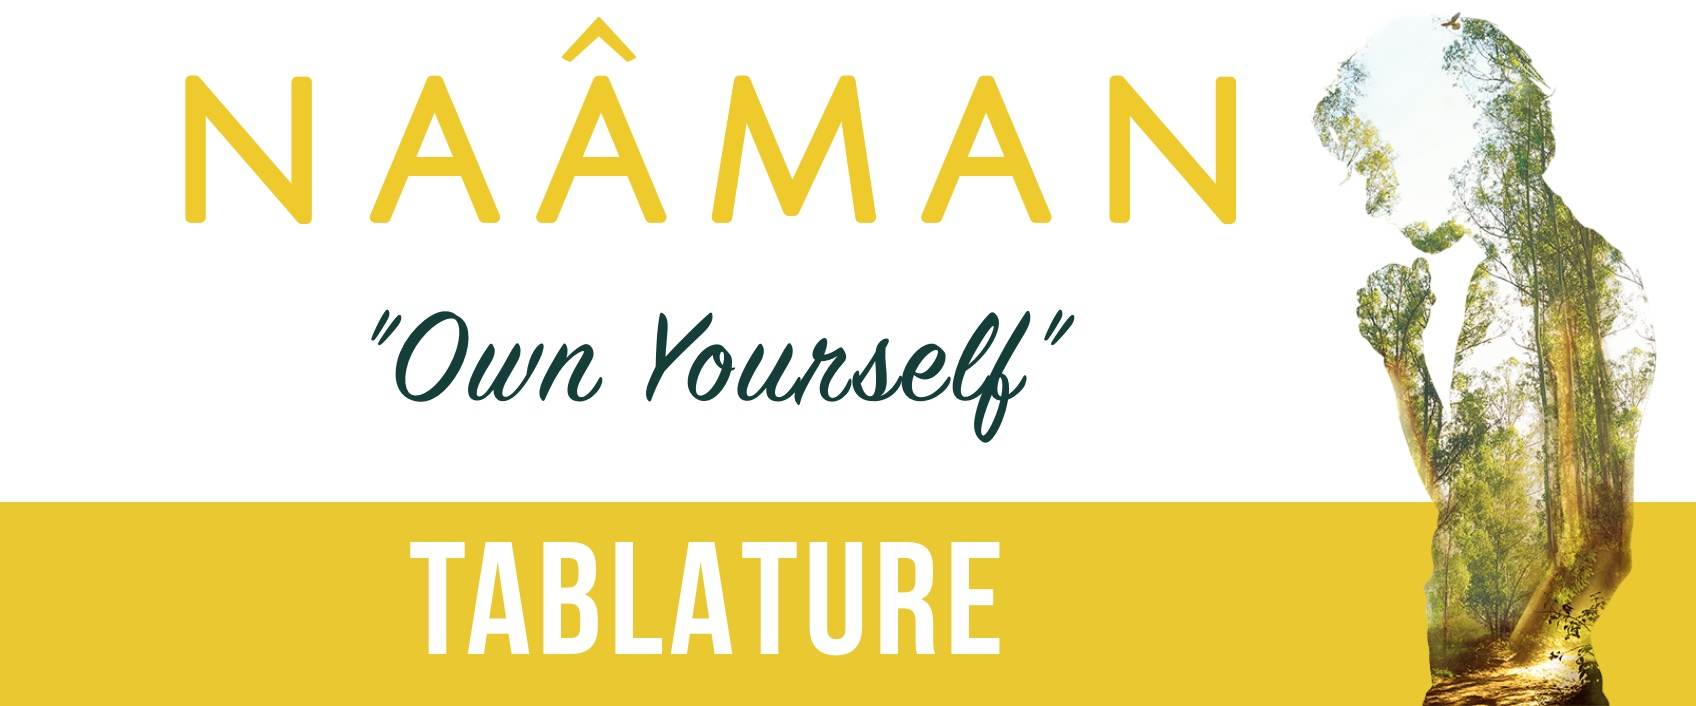 « Own Yourself » Cover Contest – Get a chance to play with Naâman on stage at the Trianon (Paris)